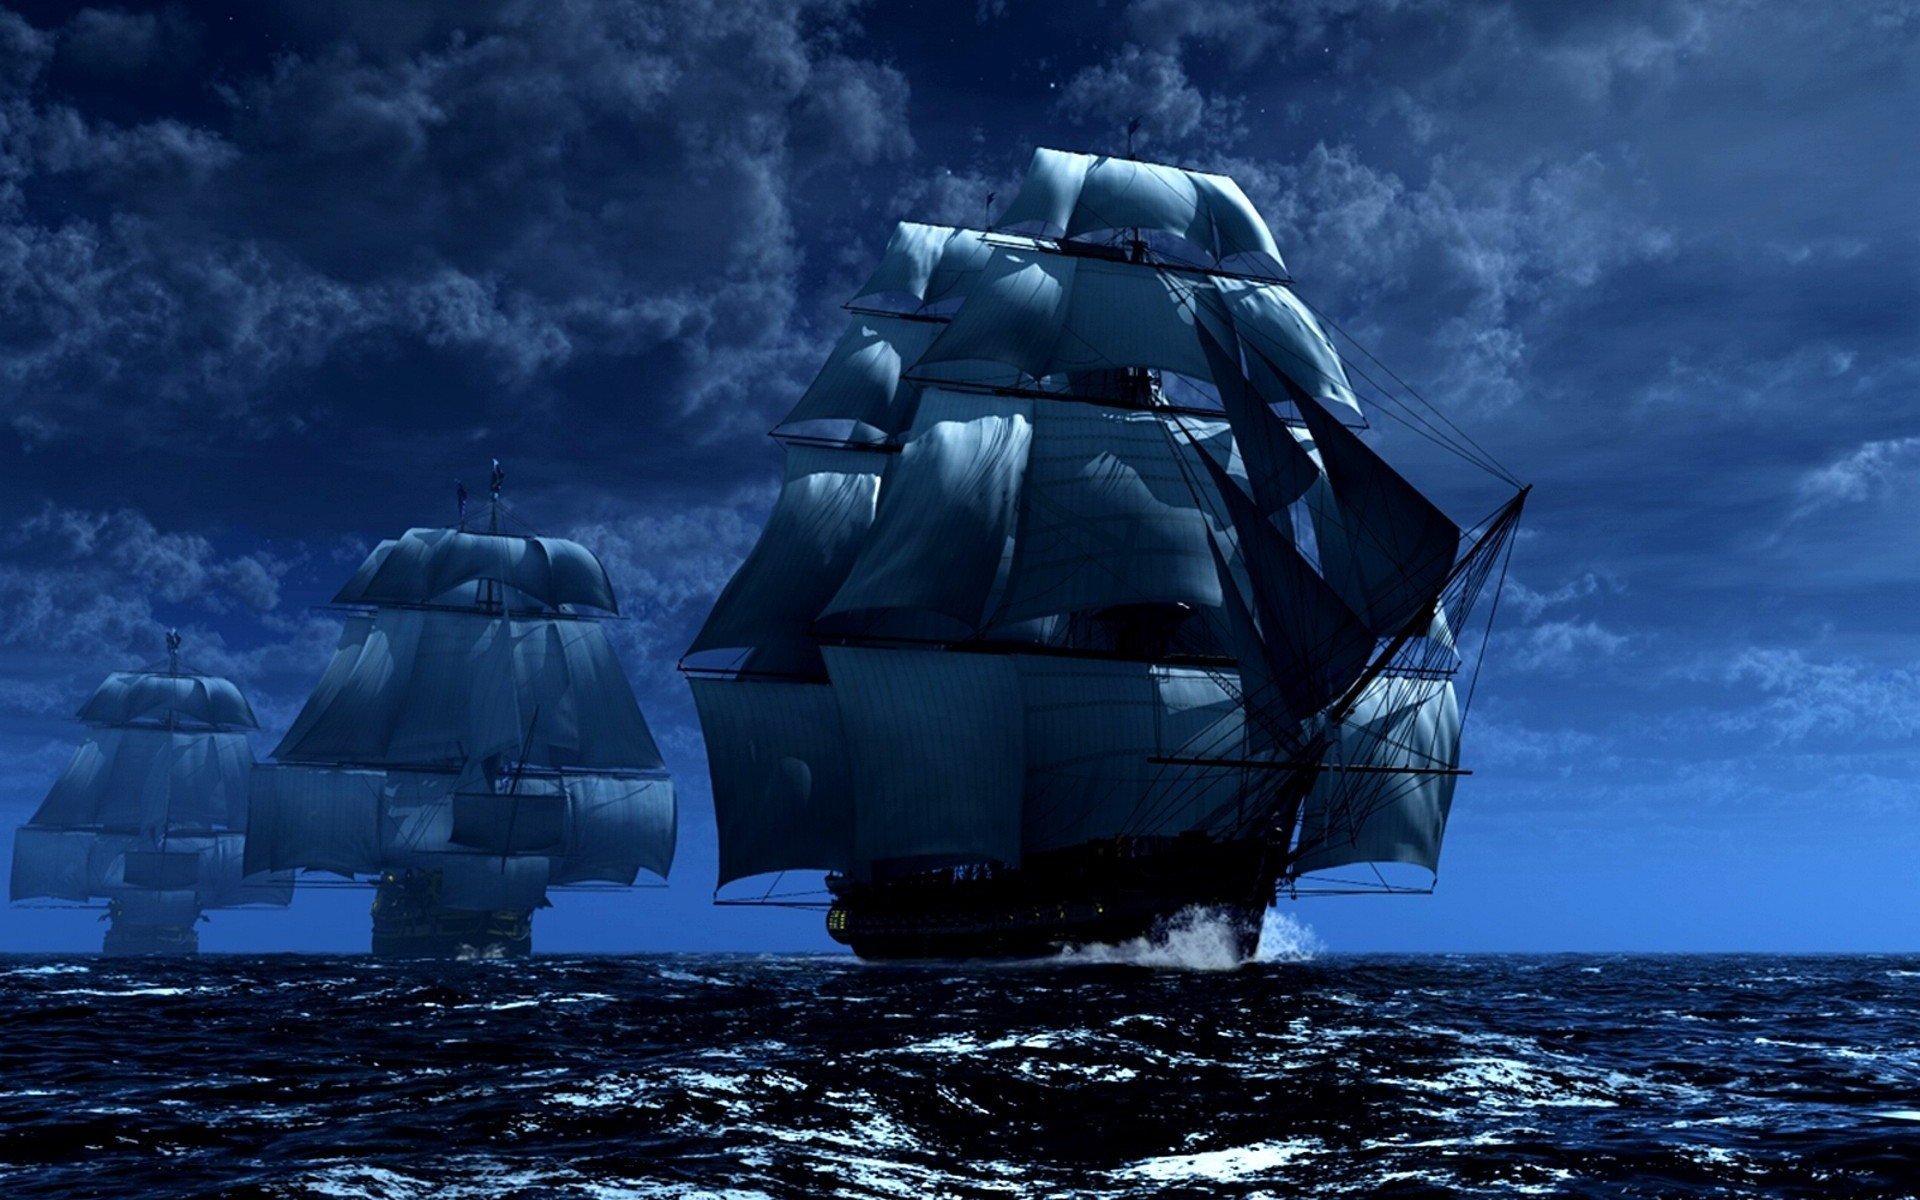 Res: 1920x1200, Tall Ships Wallpapers